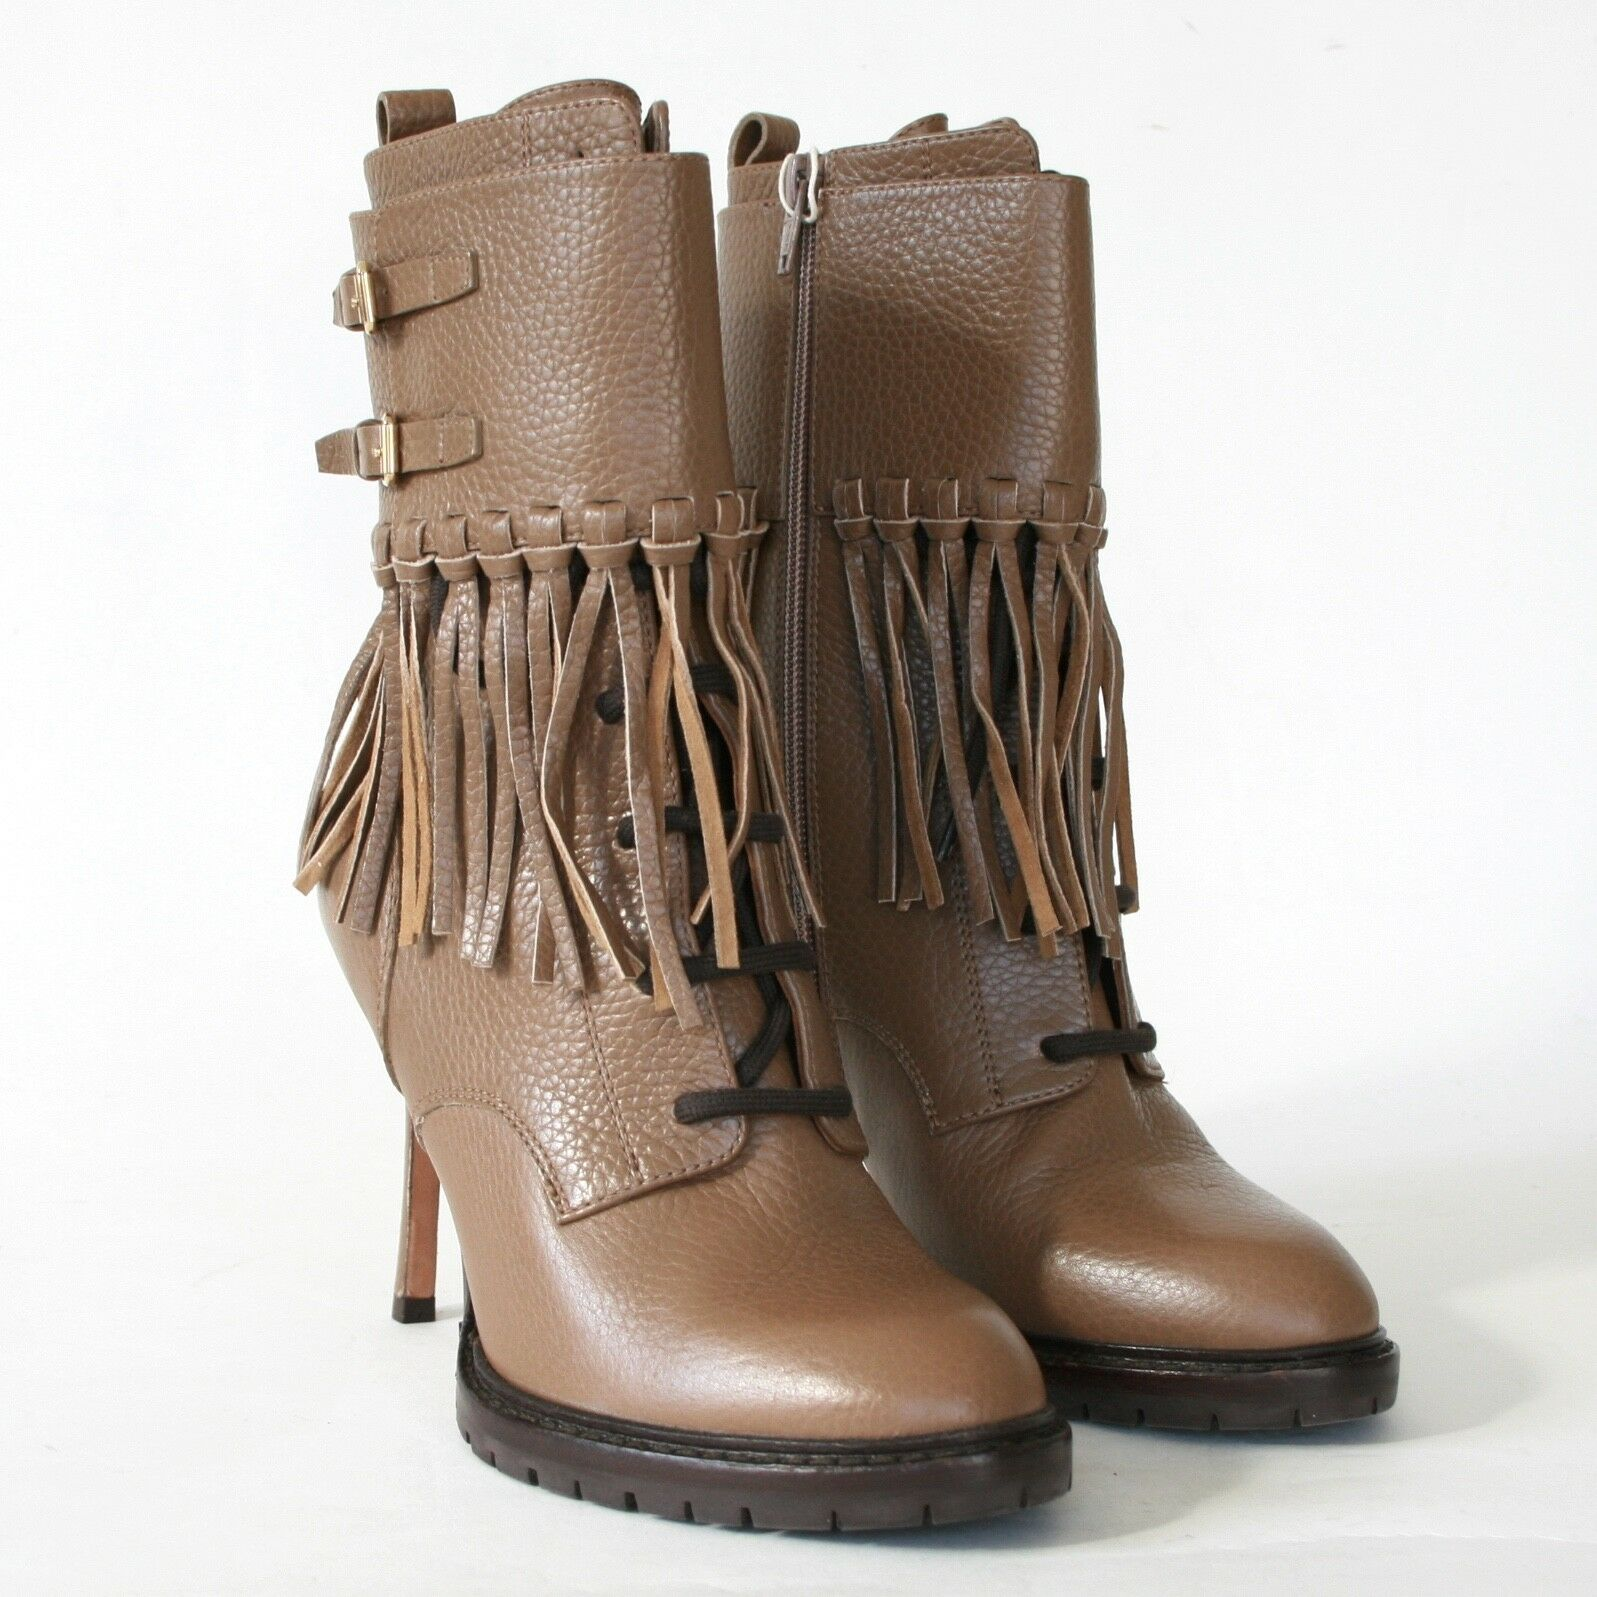 VALENTINO GARAVANI high spike heel fringe cuff bootie commando sole boots 37 NEW